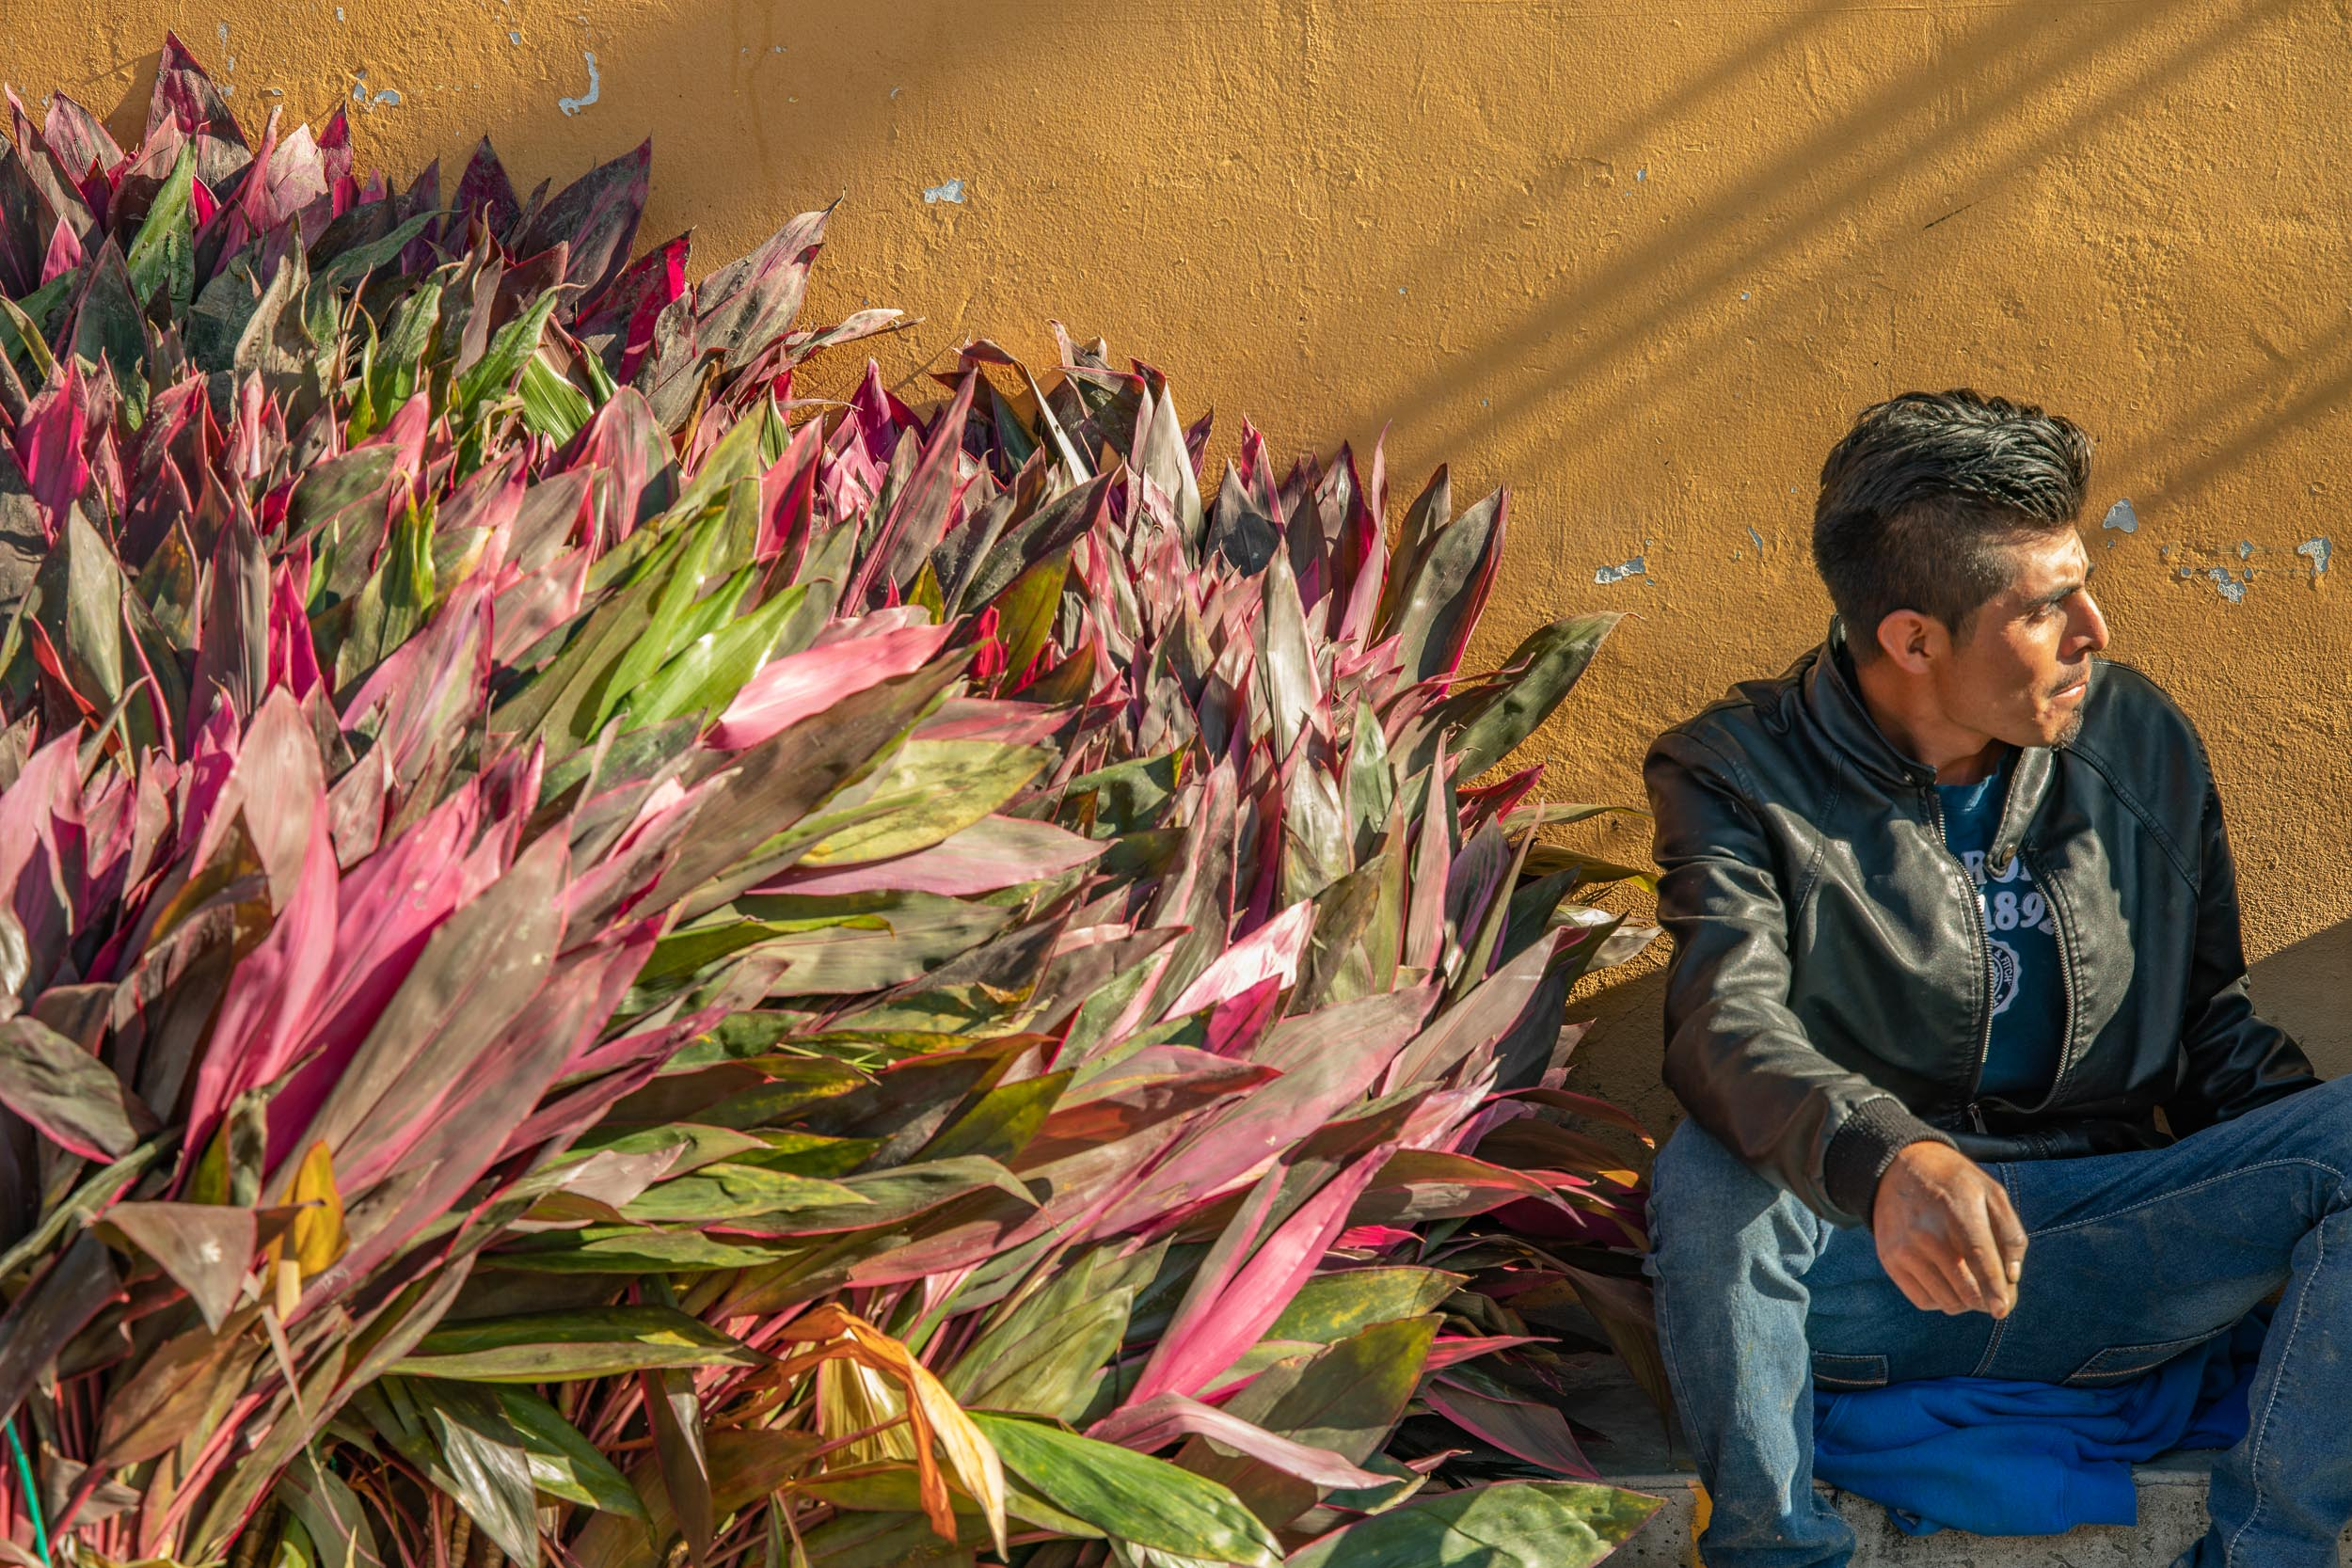 Mexico-Oaxaca-Teotitlan-Flower-Seller